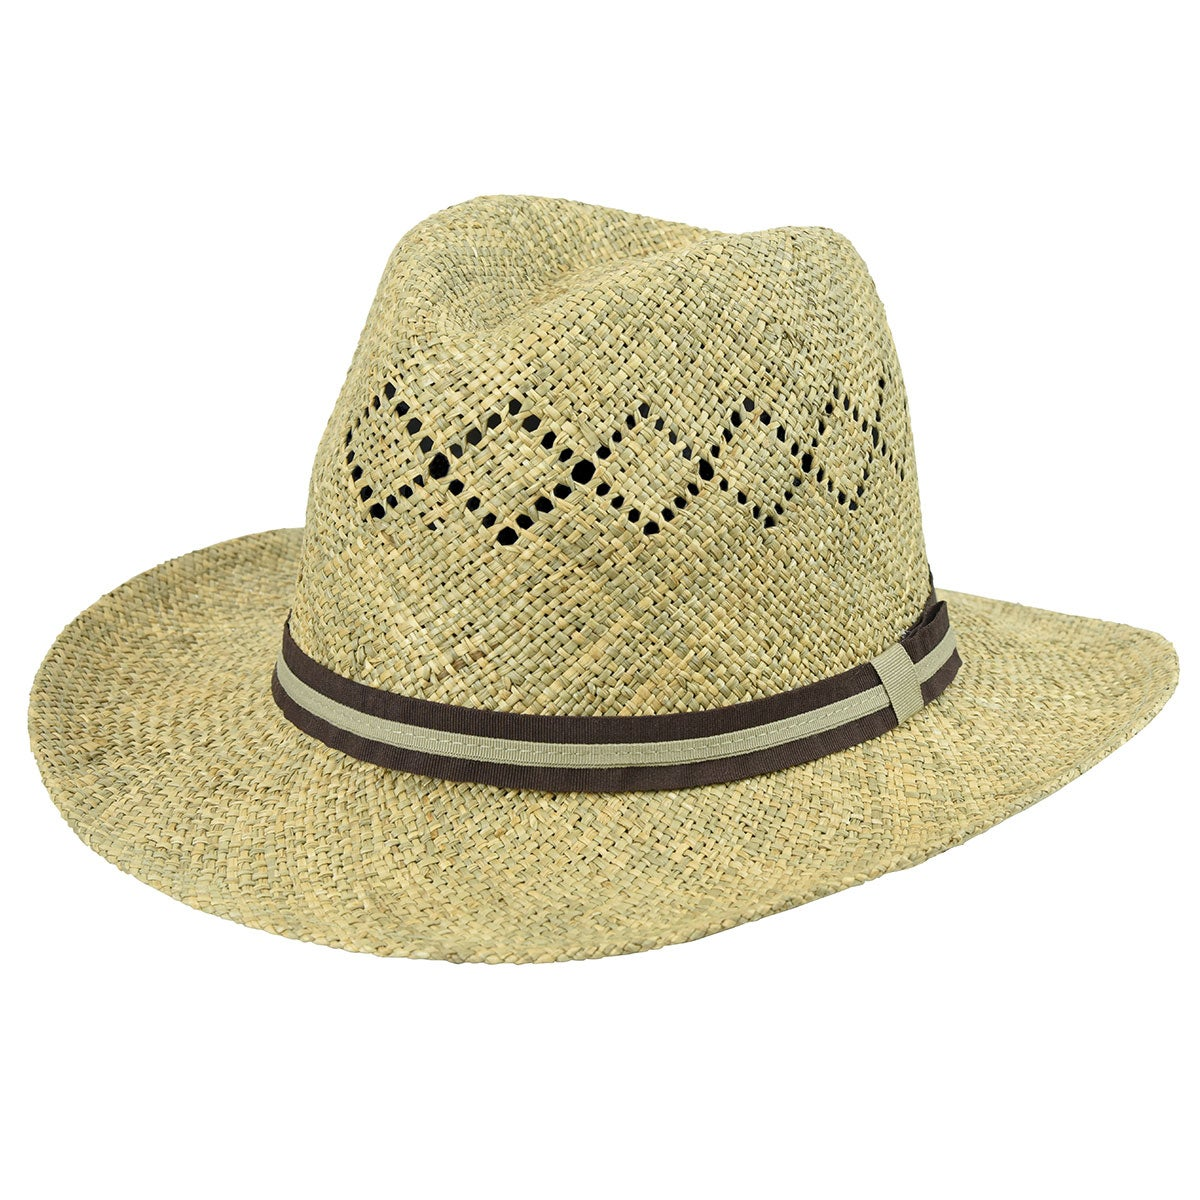 Country Gentleman Vented Linenweave Outback Hat in Natural